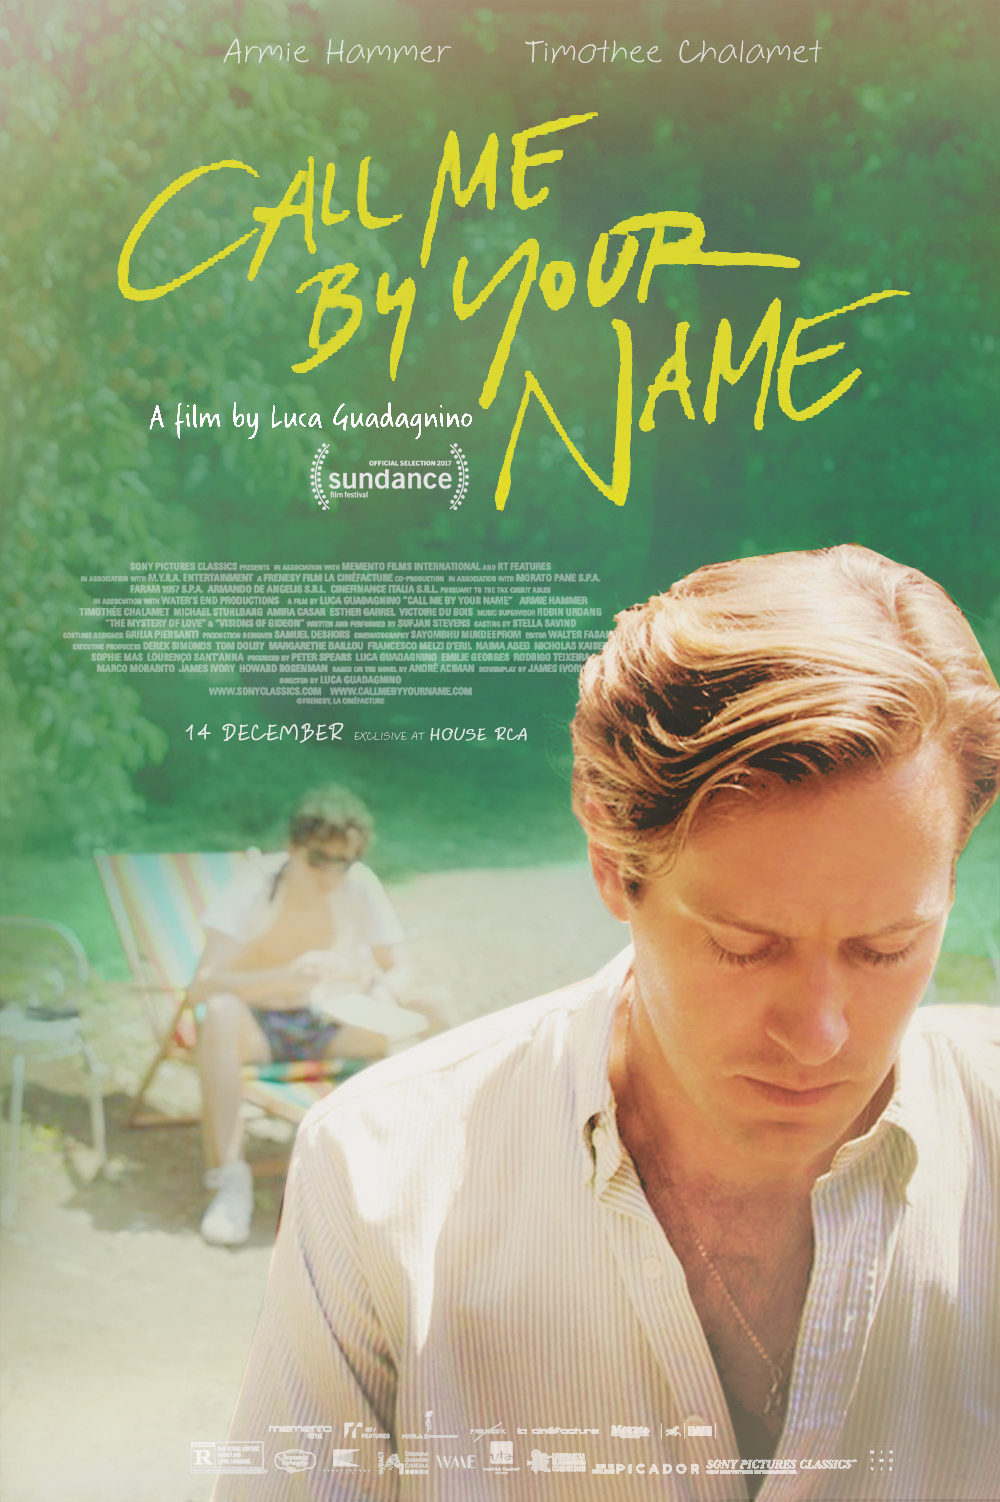 Call me by your name, le film de Luca Guadagnino Call_me_by_your_name___fanmade_poster_by_mintmovi3-dblwb7o